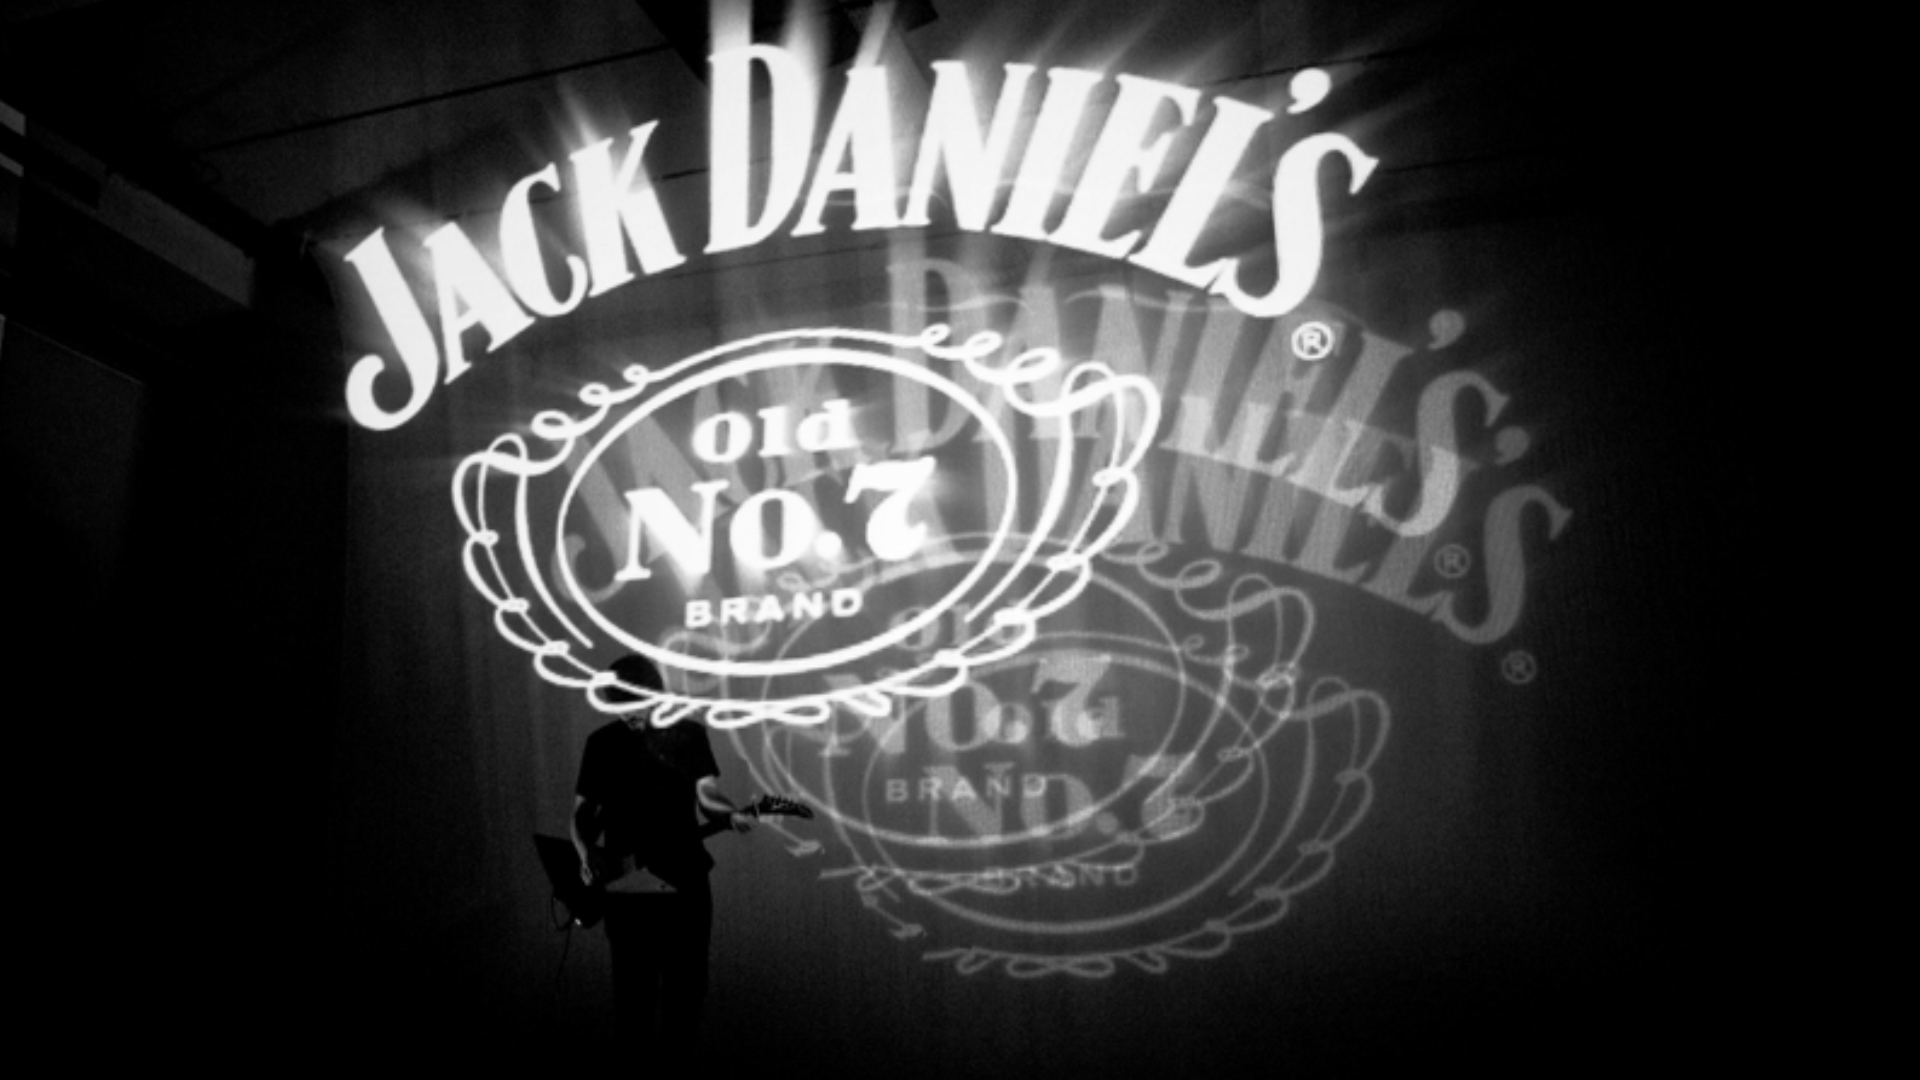 jack daniels bottle launch